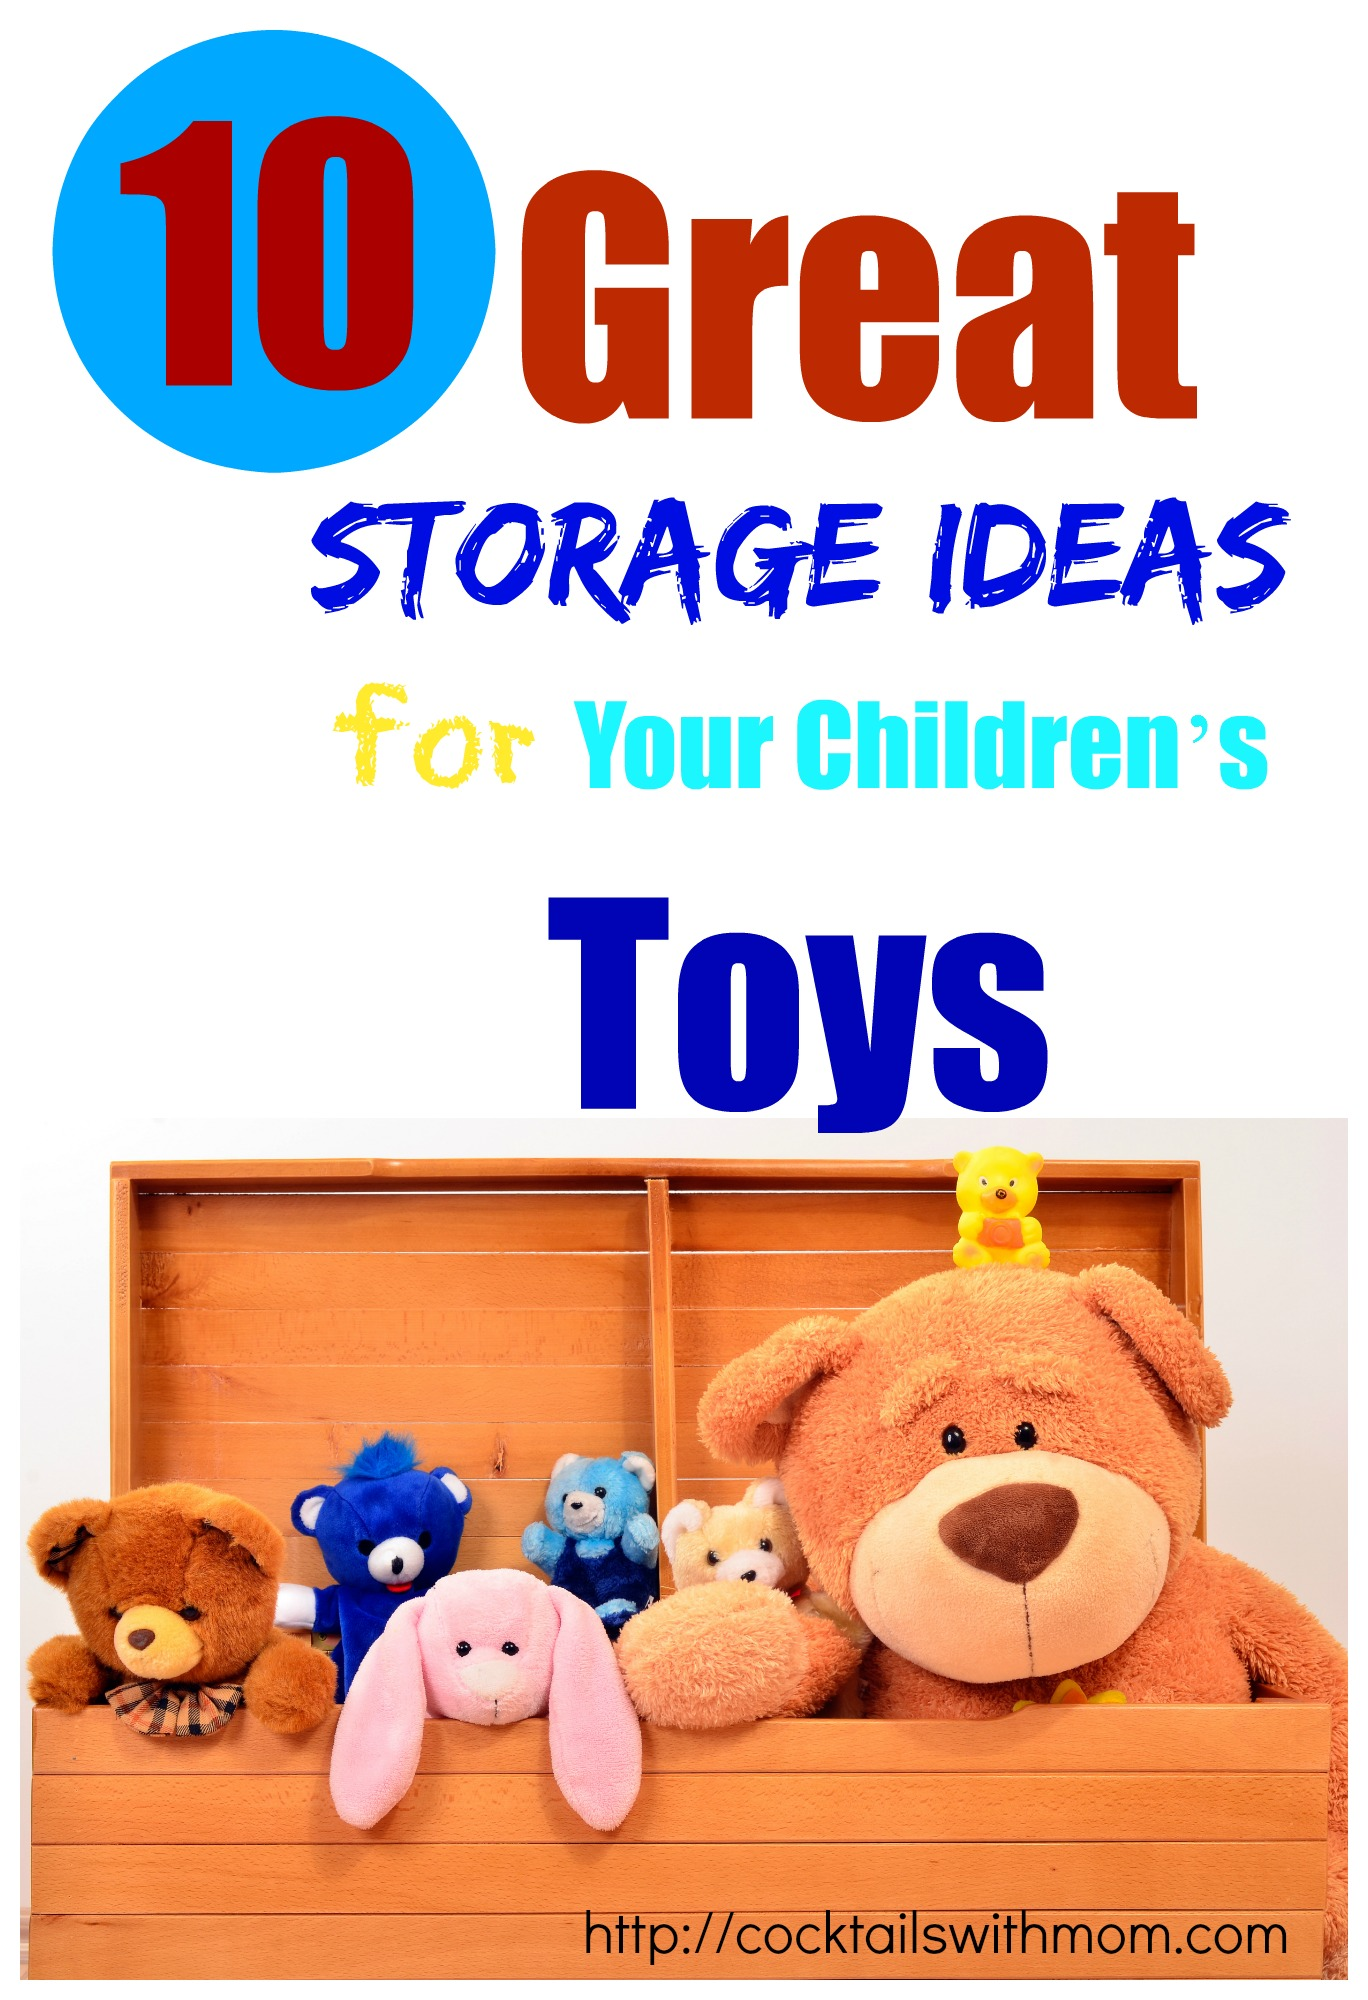 10 Great Storage Ideas for Your Children's Toys